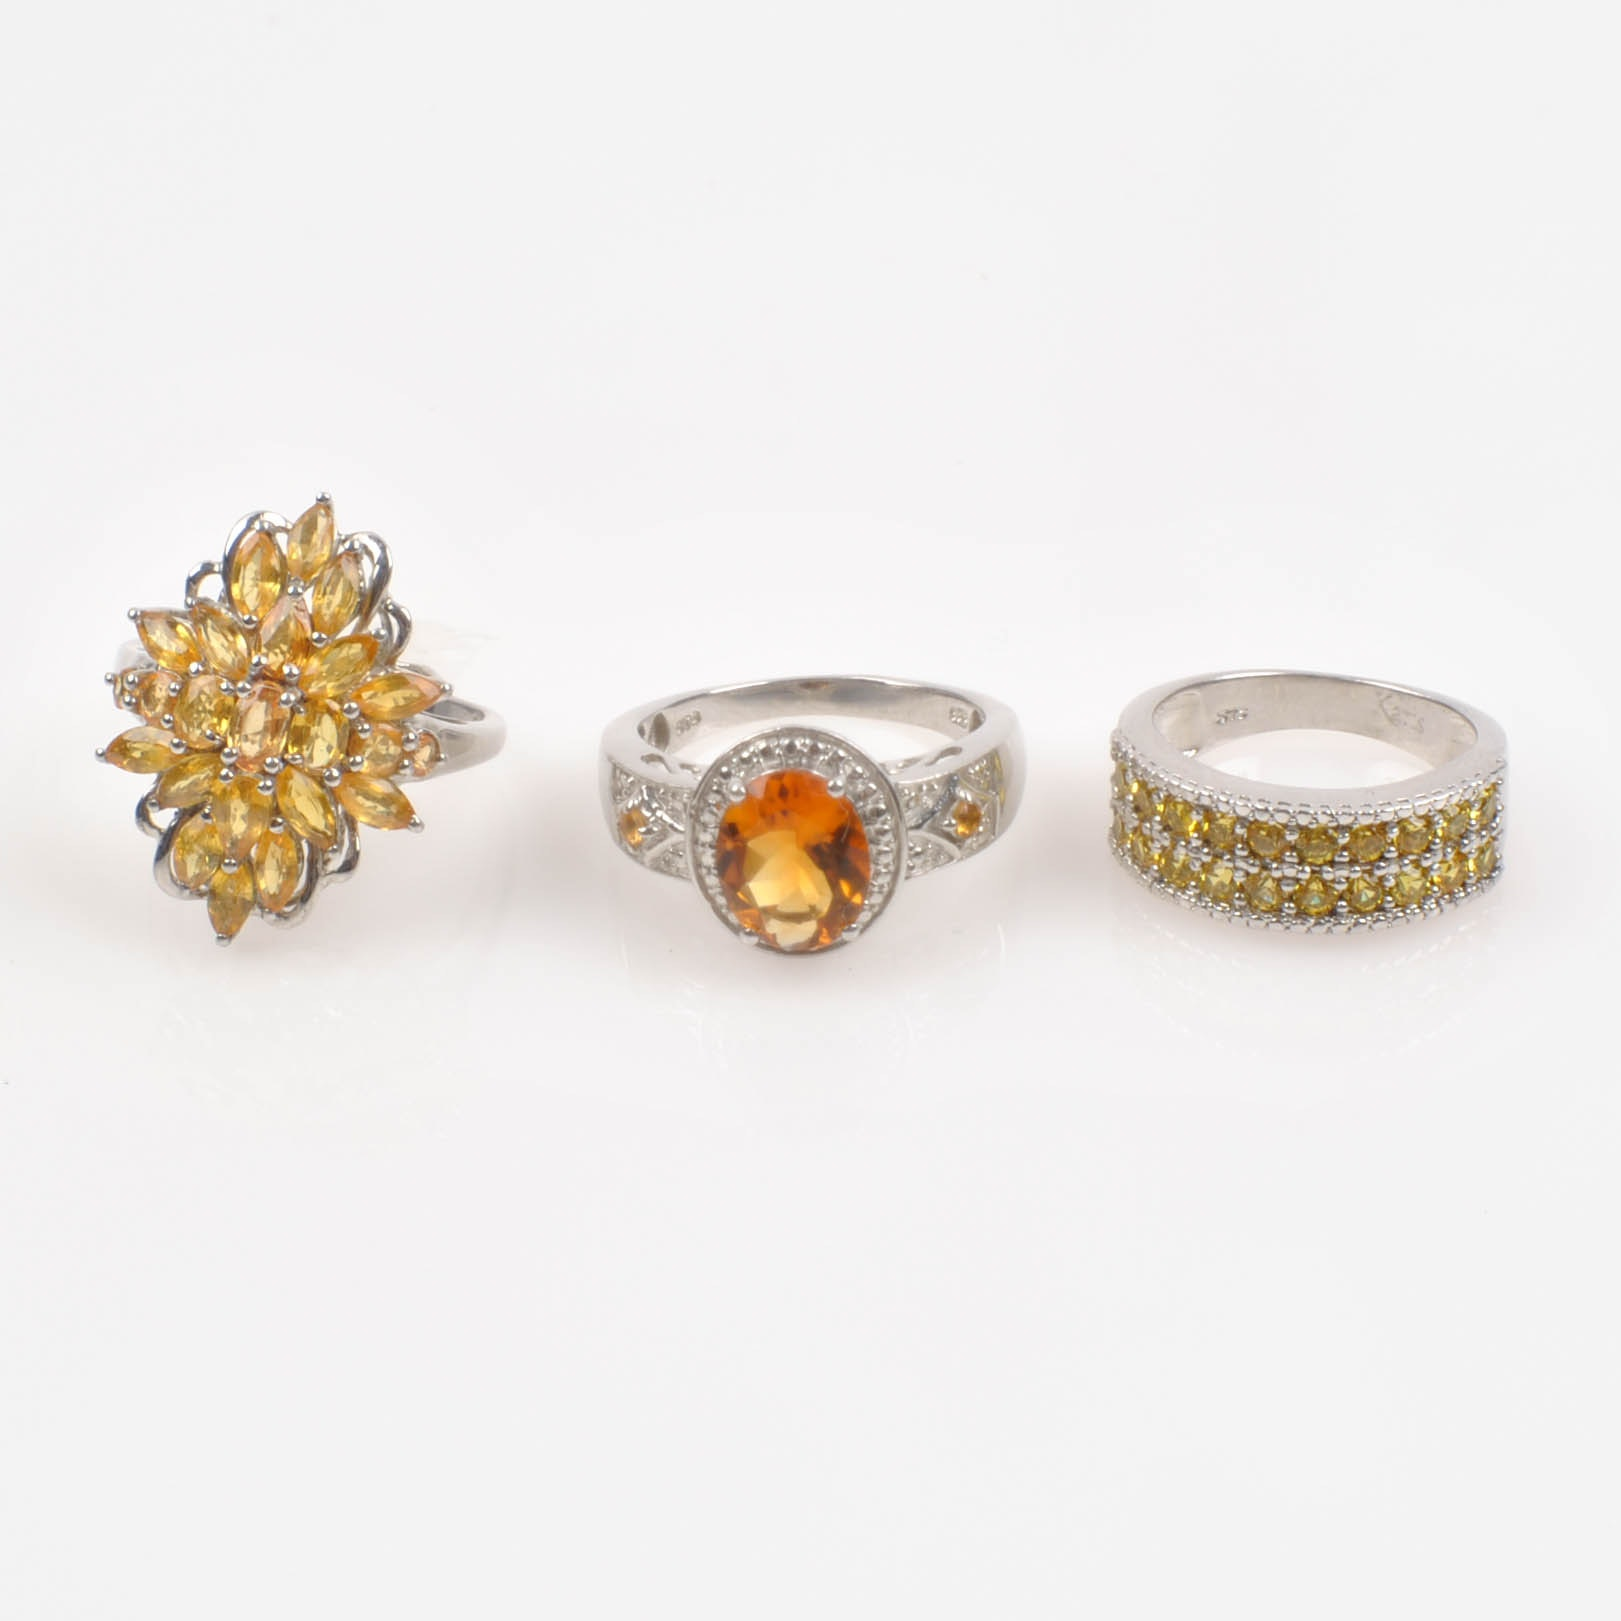 Sterling Silver Citrine, Synthetic Spinel, and Crystal Rings